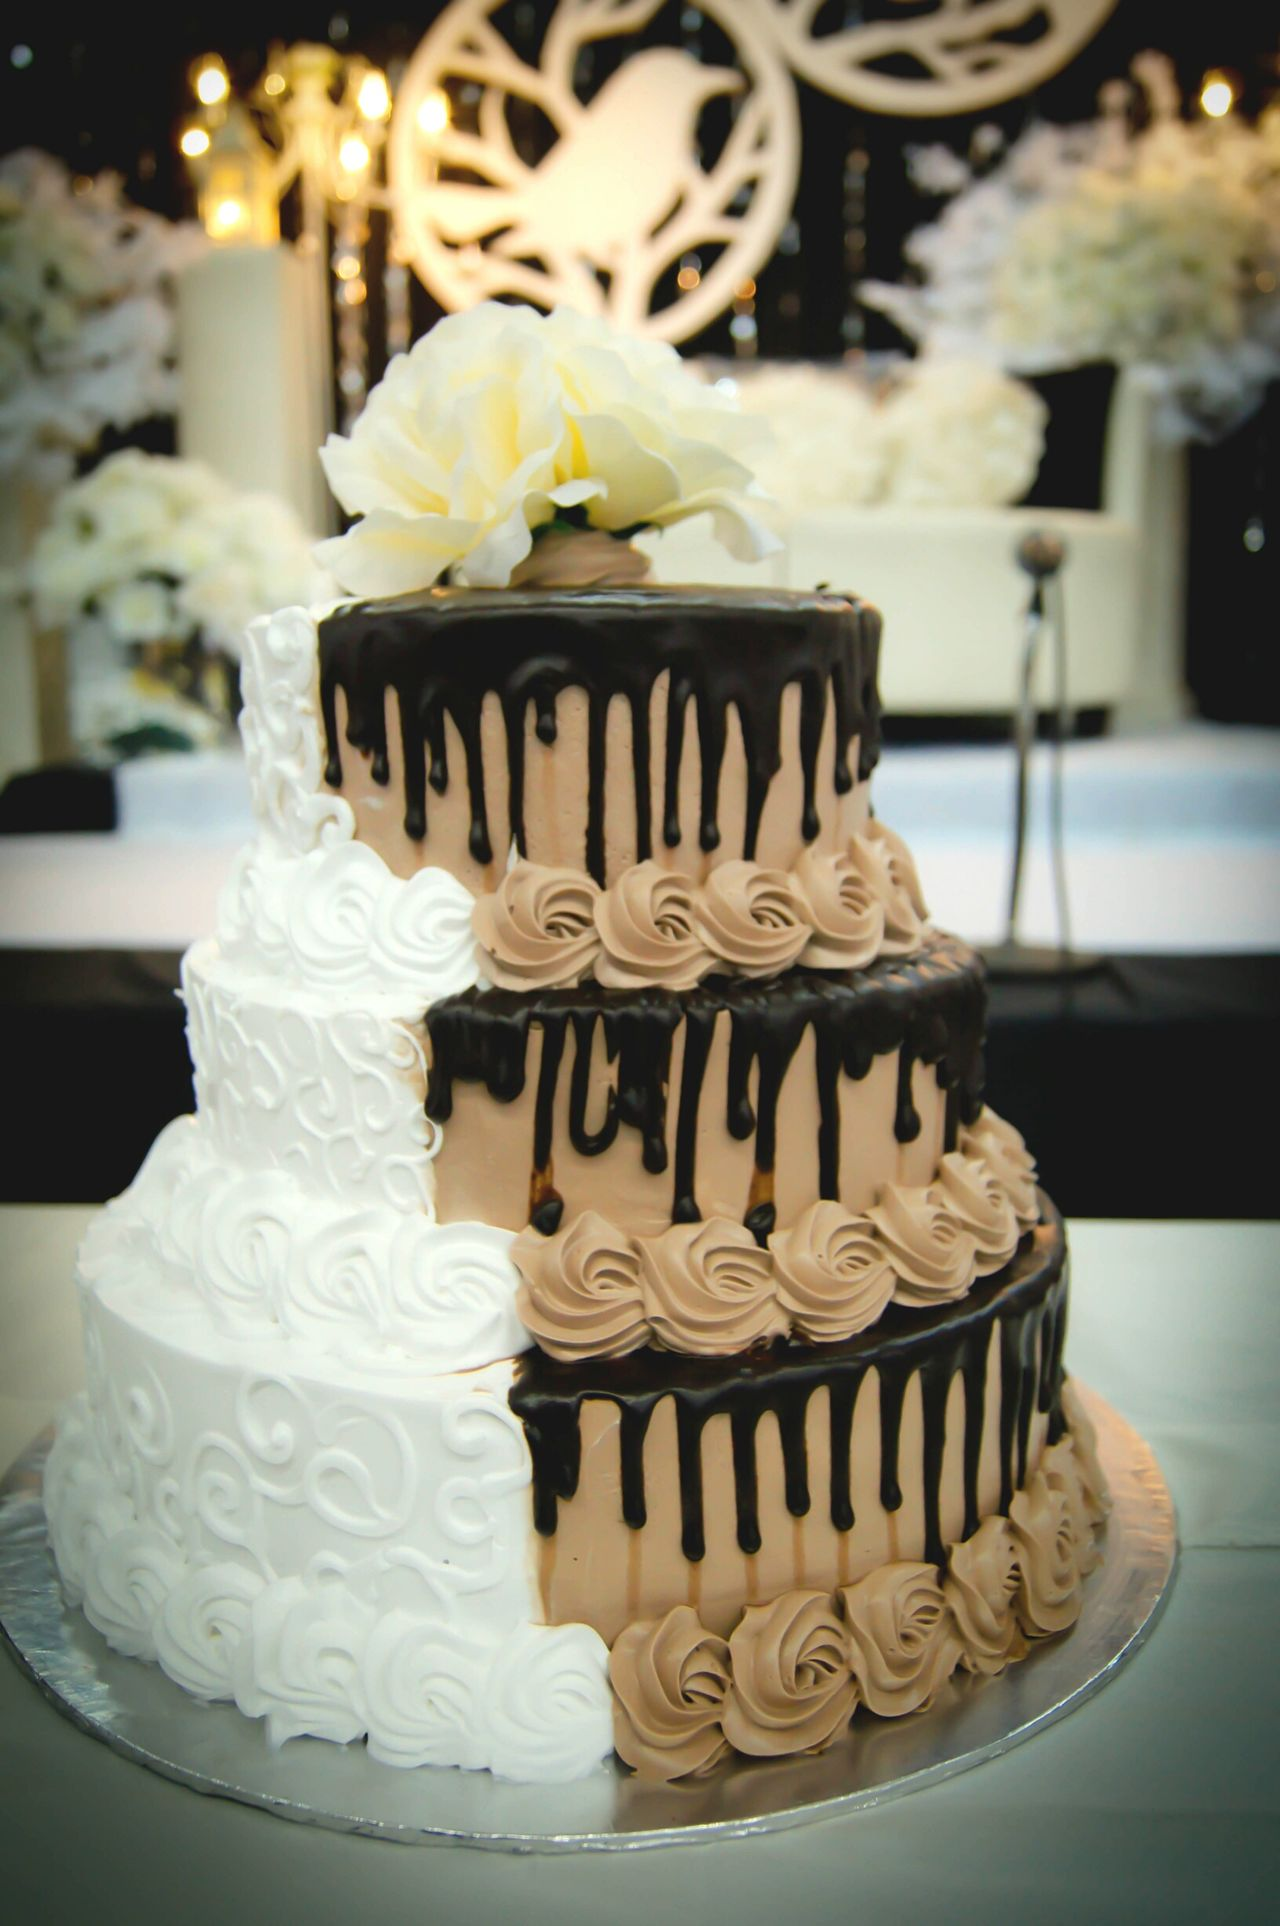 Sweet Food Cake Wedding Ceremony Food Traditional Culture Malayweddings Malaysia Scenery Day Celebration Wedding Cake